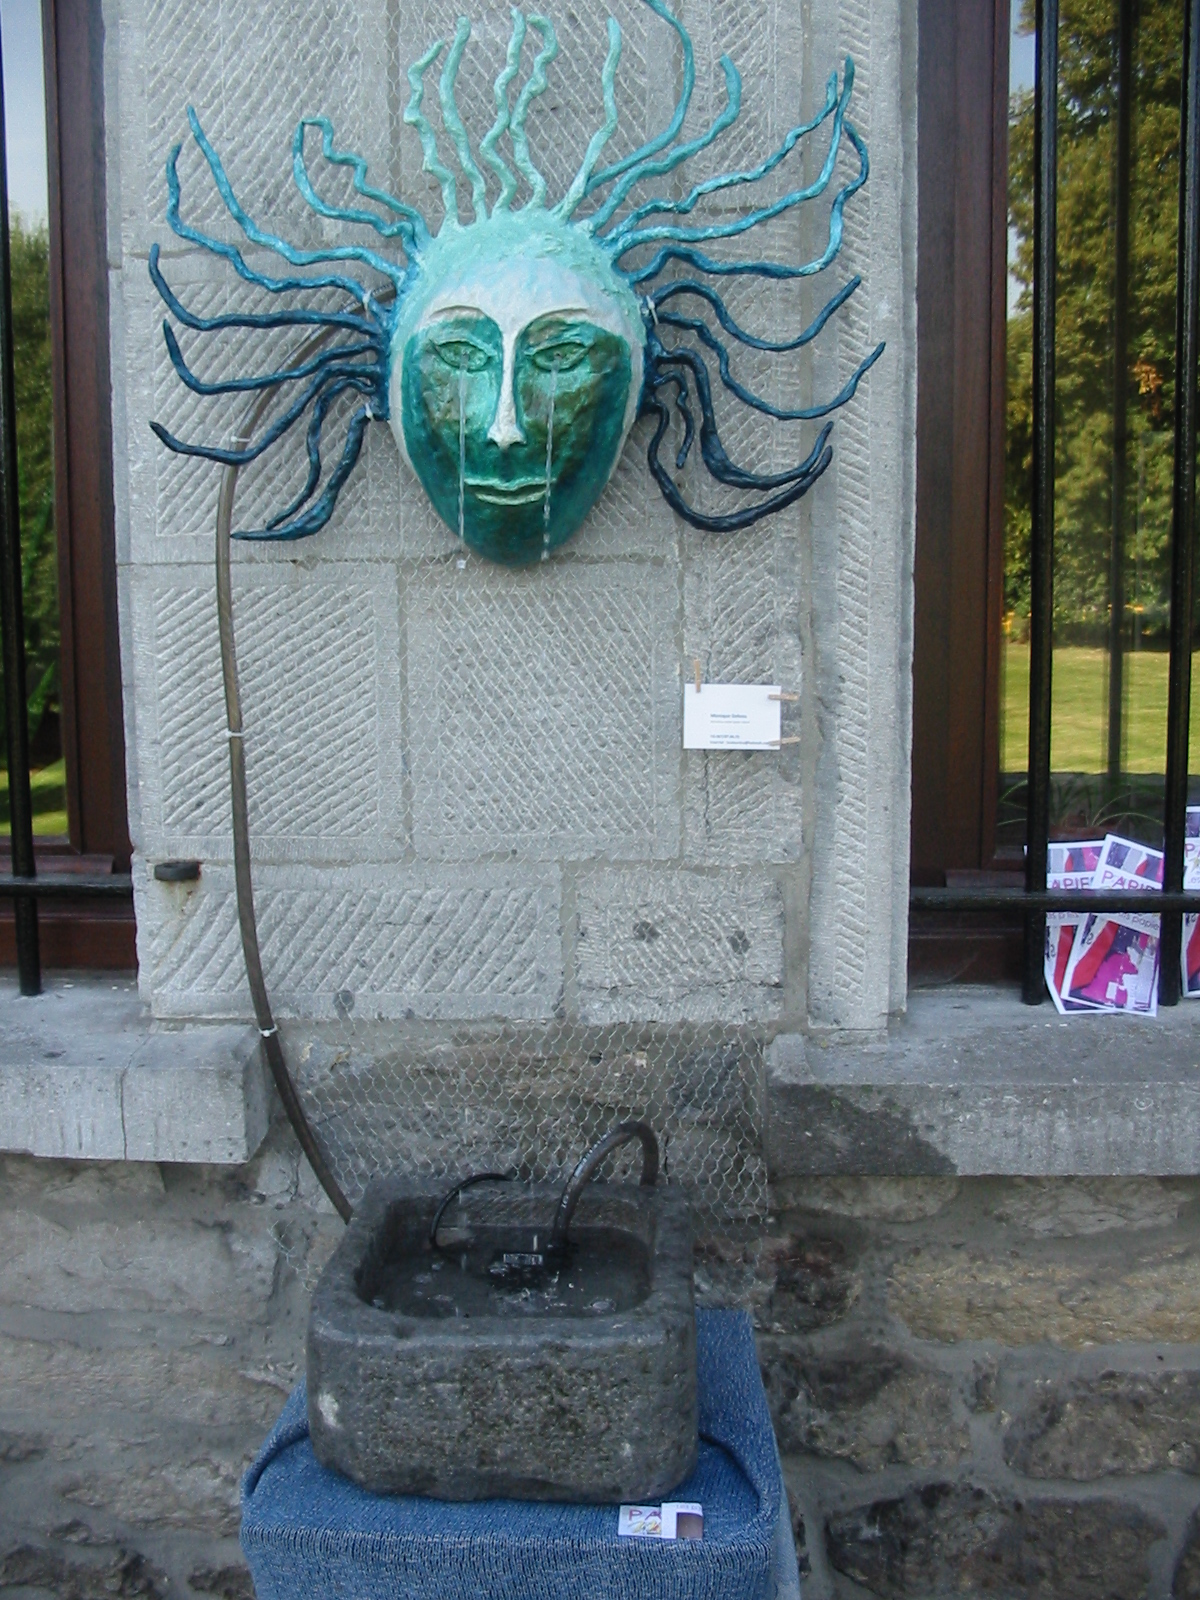 Masque fontaine